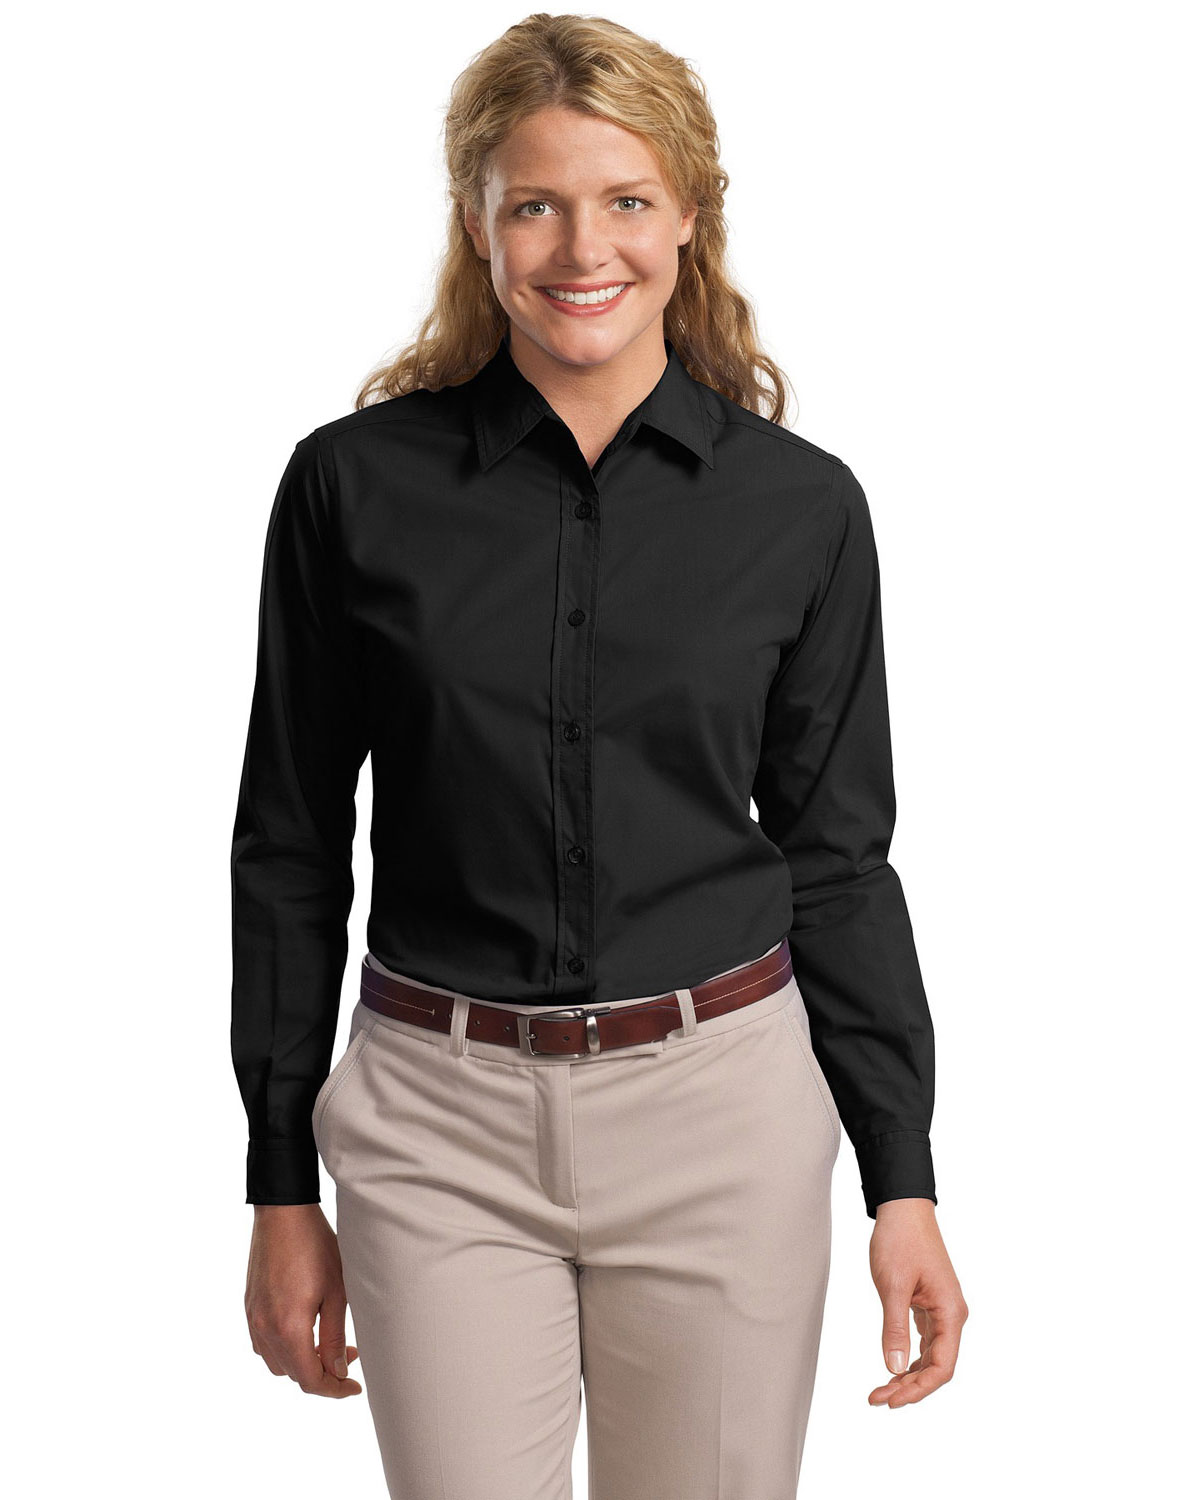 Port Authority L607 Women Long Sleeve Easy Care, Soil Resistant Shirt Black at GotApparel